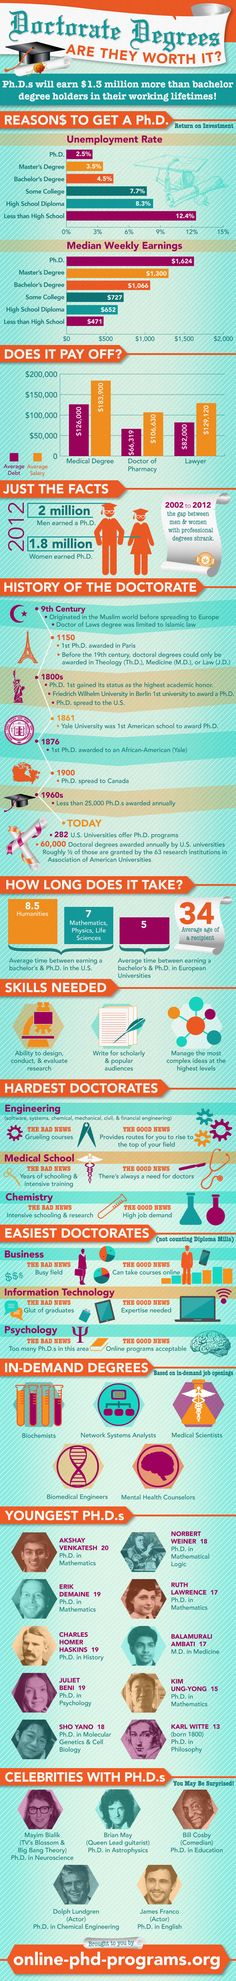 Doctorate Degrees: Are They Worth It? www.online-phd-programs.org/doctorate-degrees/